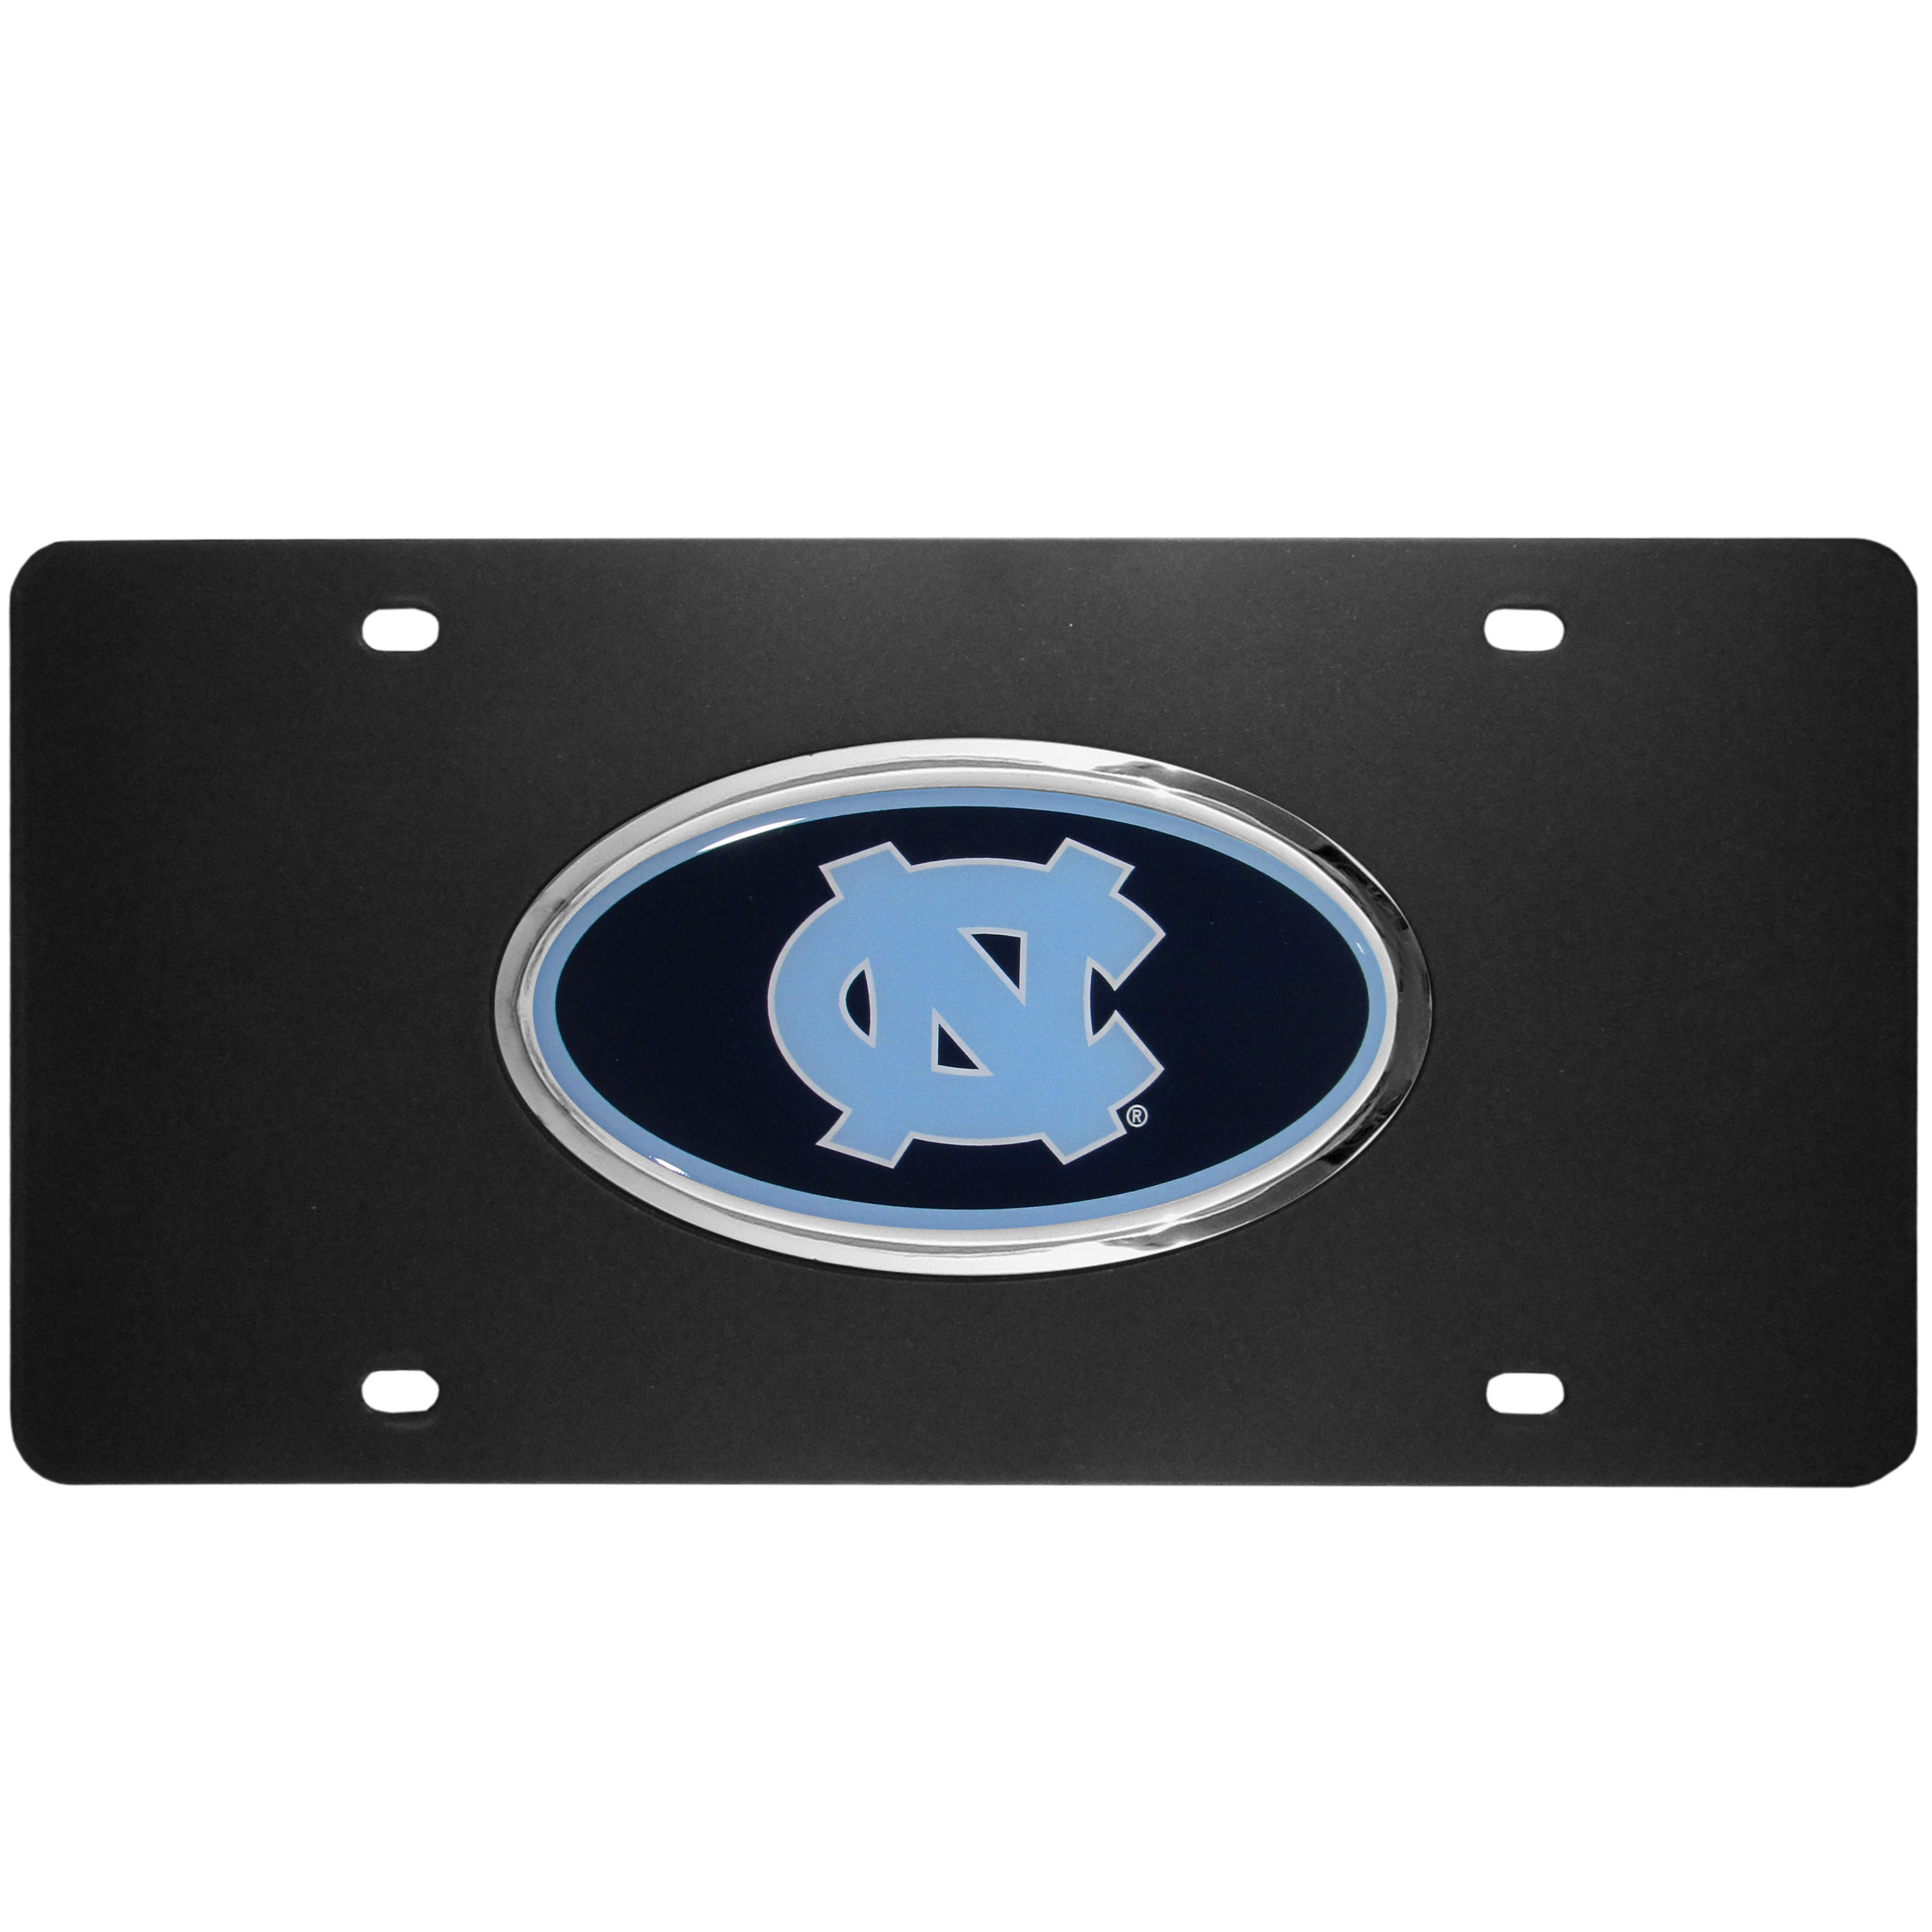 N. Carolina Tar Heels Acrylic License Plate - Our N. Carolina Tar Heels acrylic license plate is a step above the rest. It is made of thick, durable acrylic with a matte black finish and raised chrome saddle for the extra large team emblem.